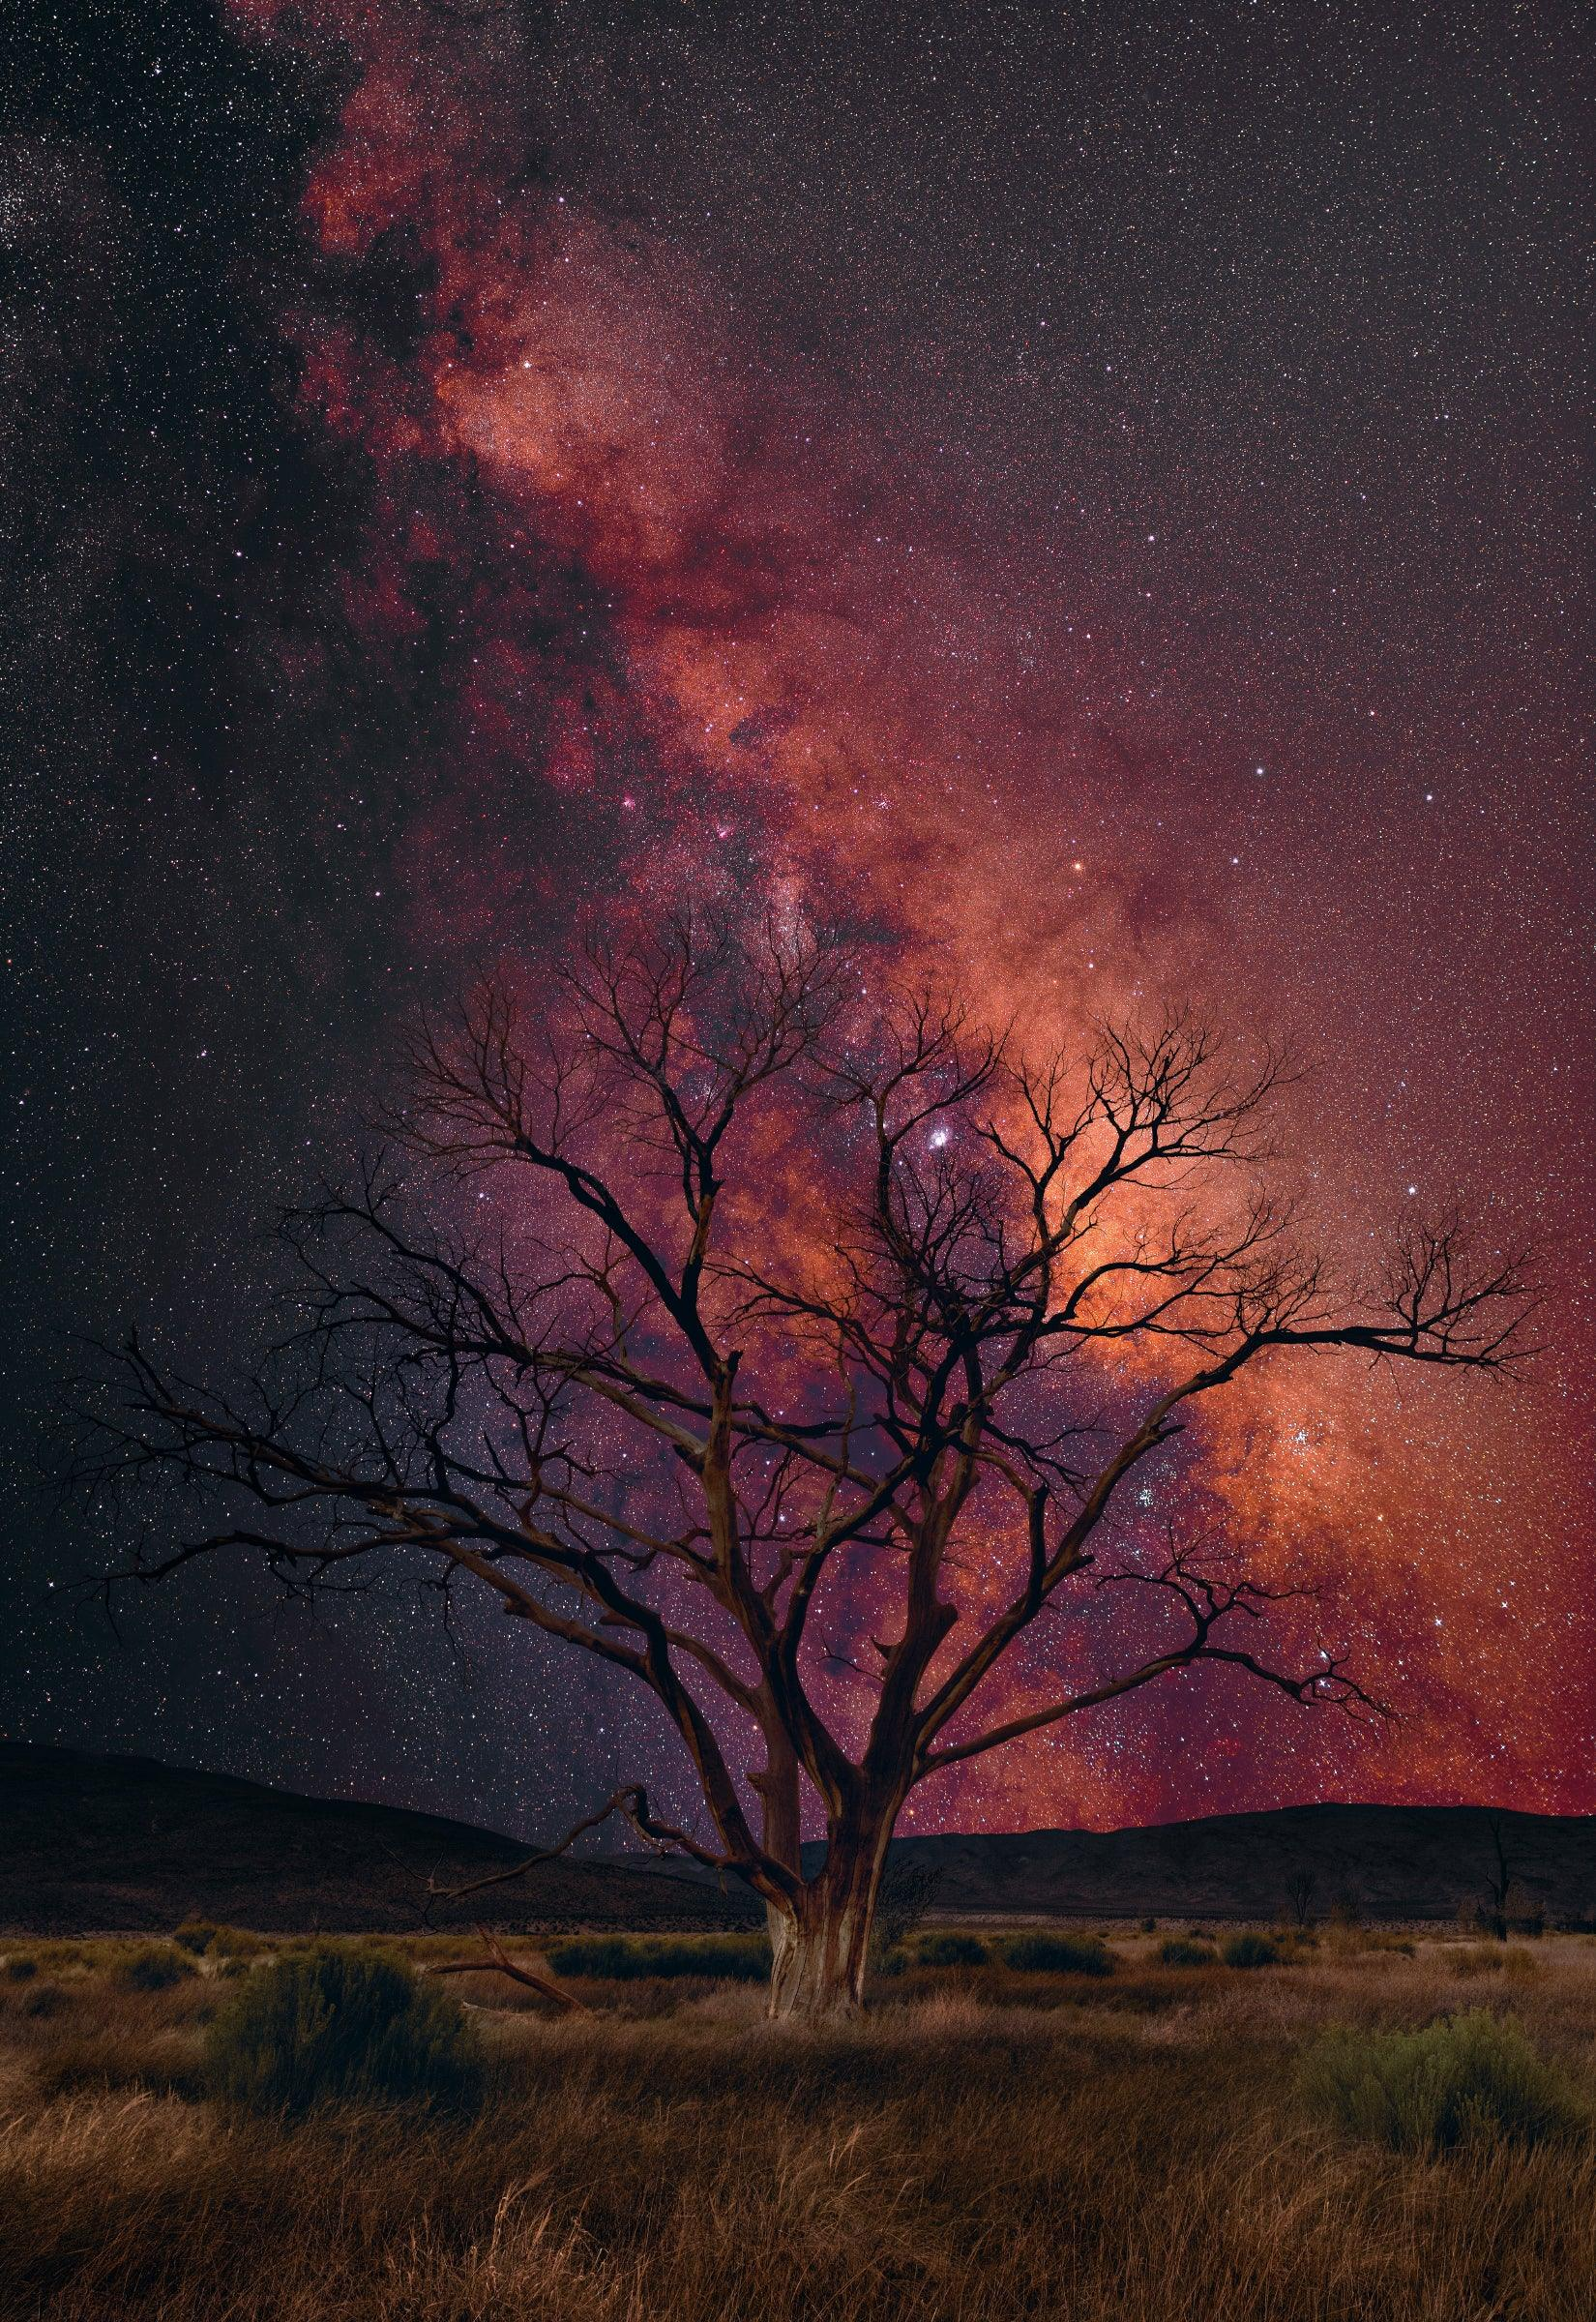 Leafless old tree in a yellow grass field under a sky filled with stars and the milky way